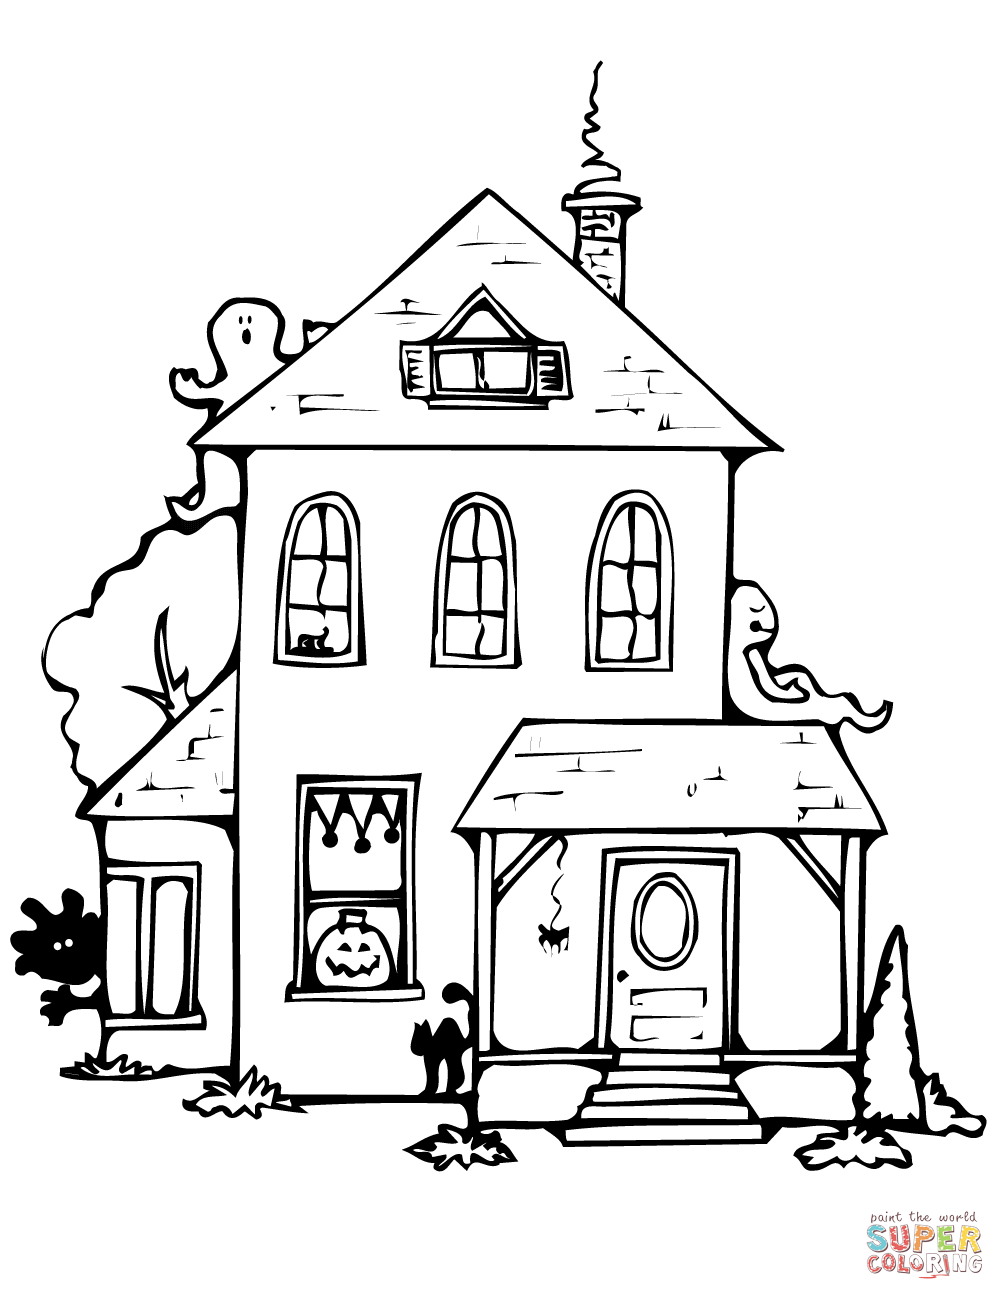 coloring page haunted house haunted house coloring page free printable coloring pages house page haunted coloring